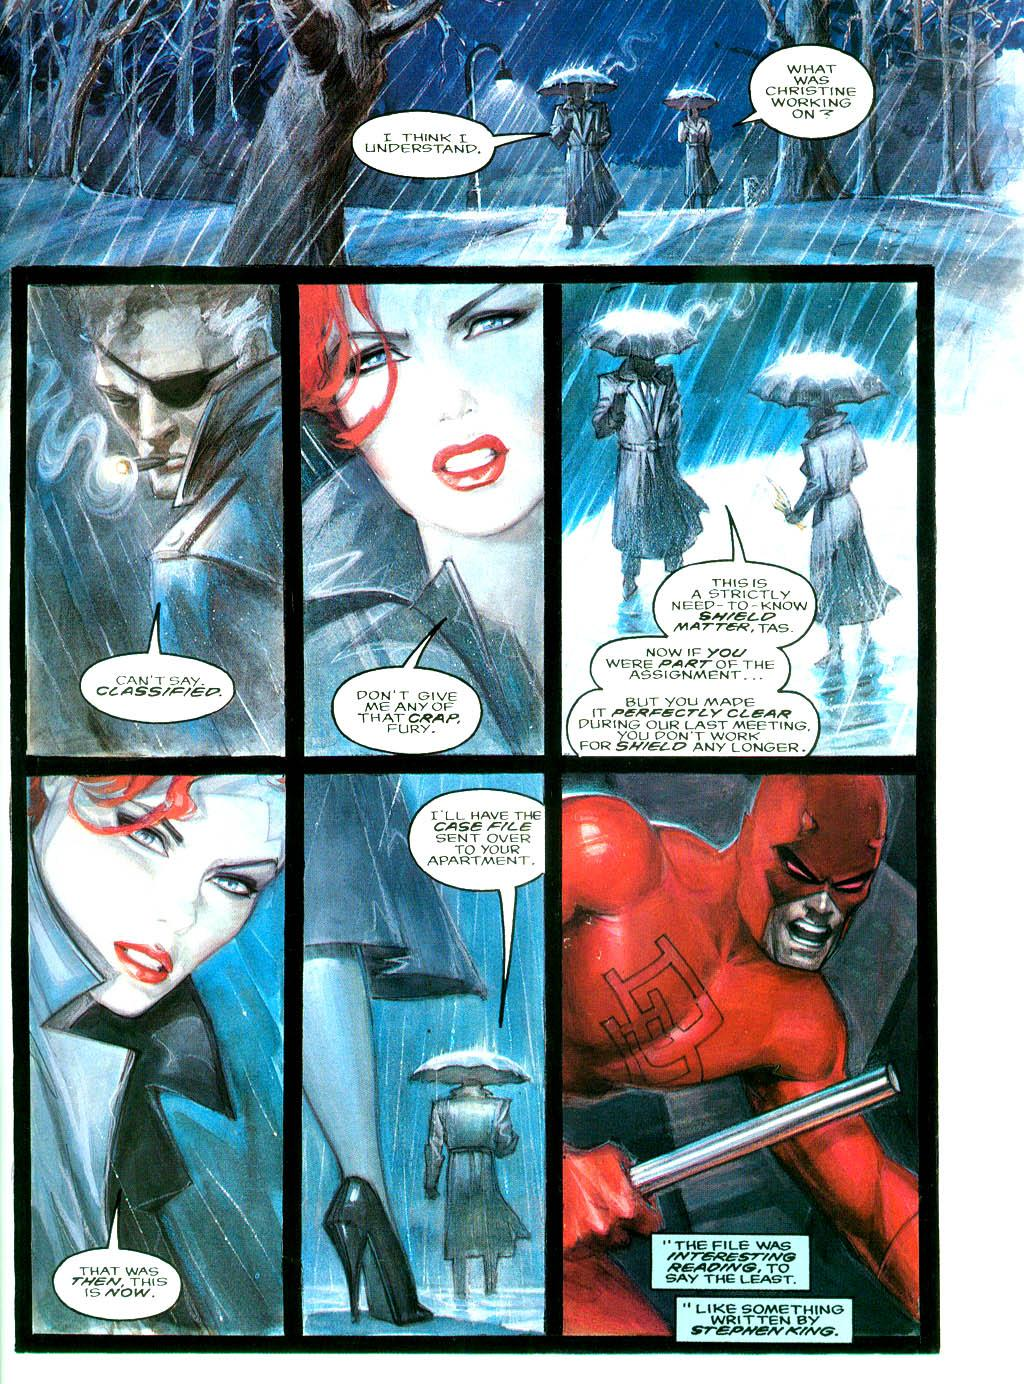 Daredevil Black Widow - Abattoir review